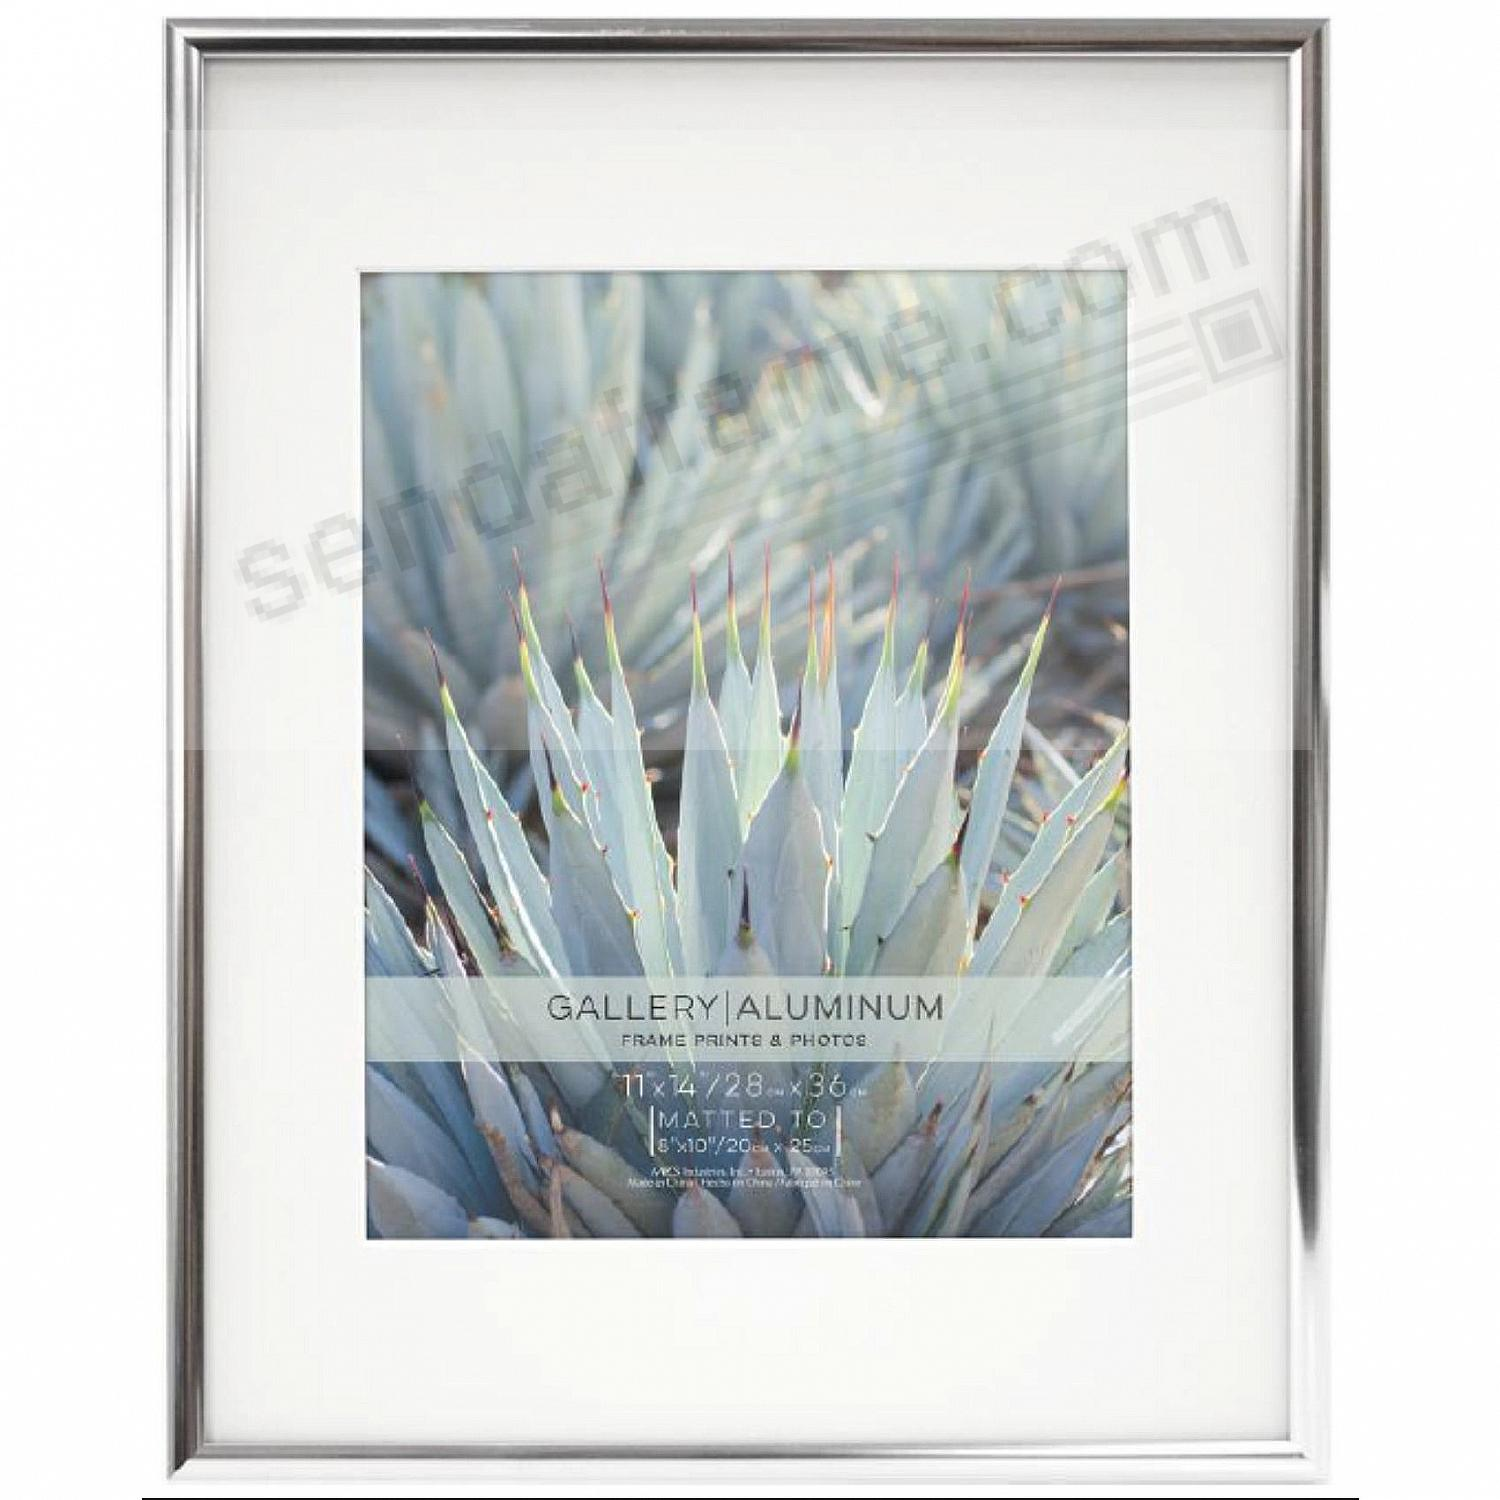 Classic Silver Aluminum POSTER matted 11x14/8x10 frame by MCS®